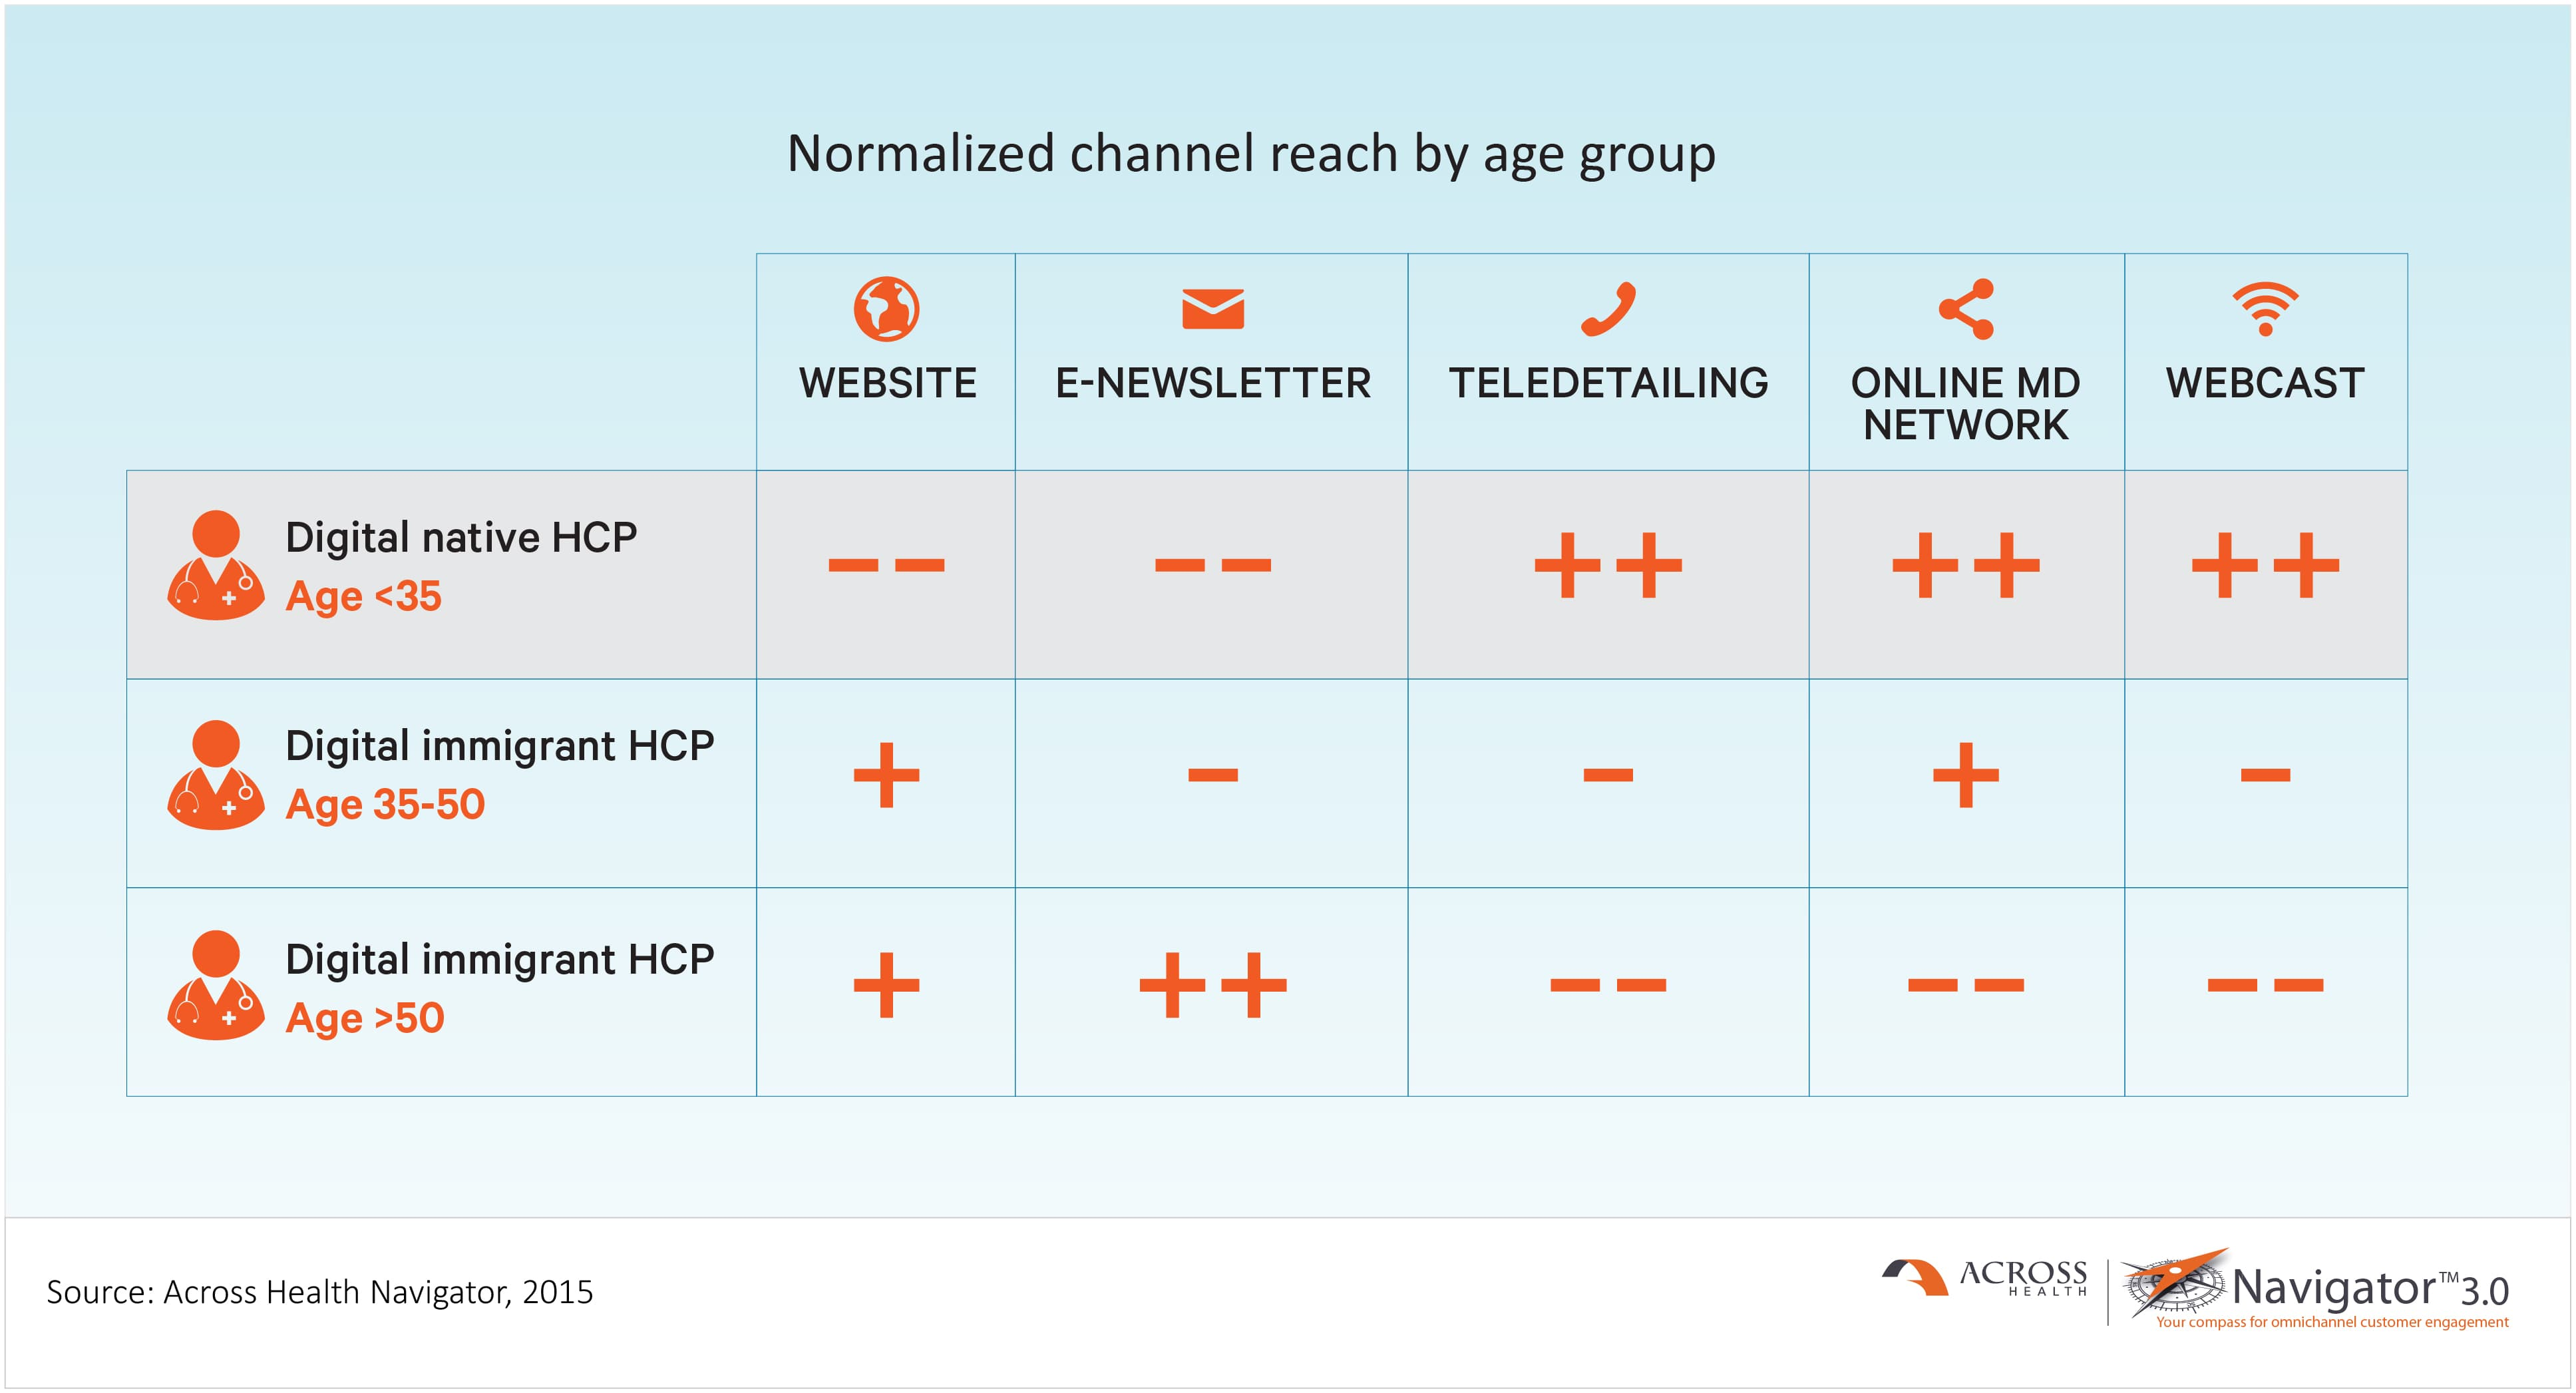 Normalized channel reach by age group